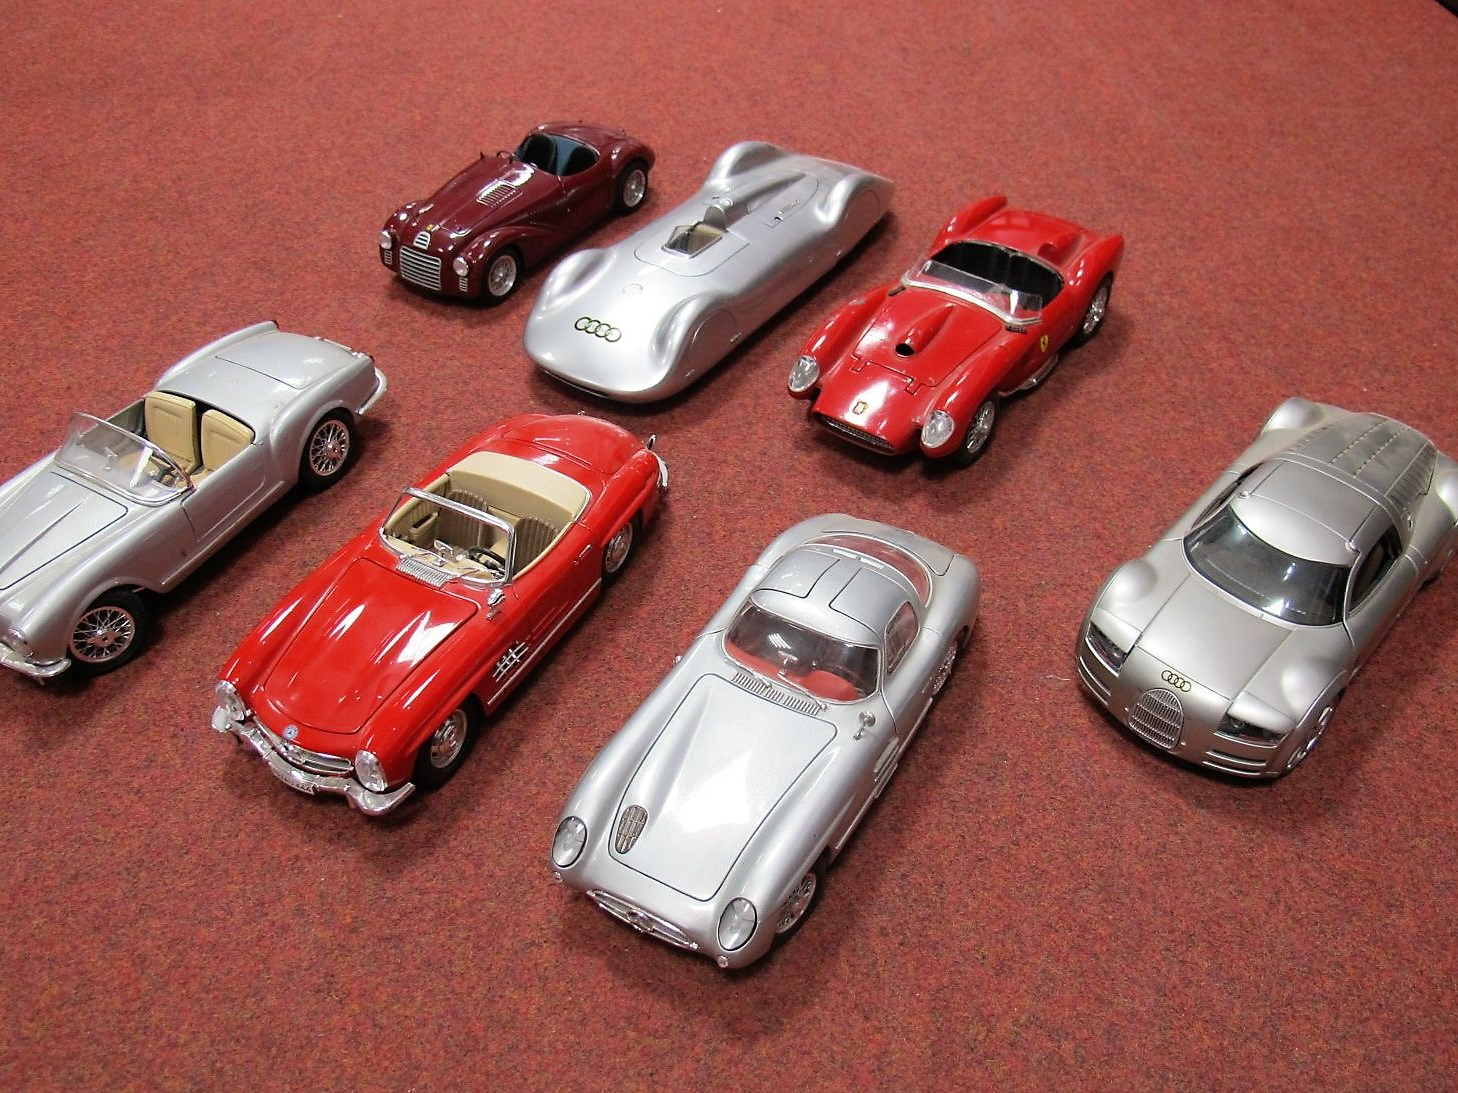 Lot 40 - Seven 1:18th Scale Highly Detailed Diecast Model Cars, by Revell, Hot Wheels, Maisto and Burago.